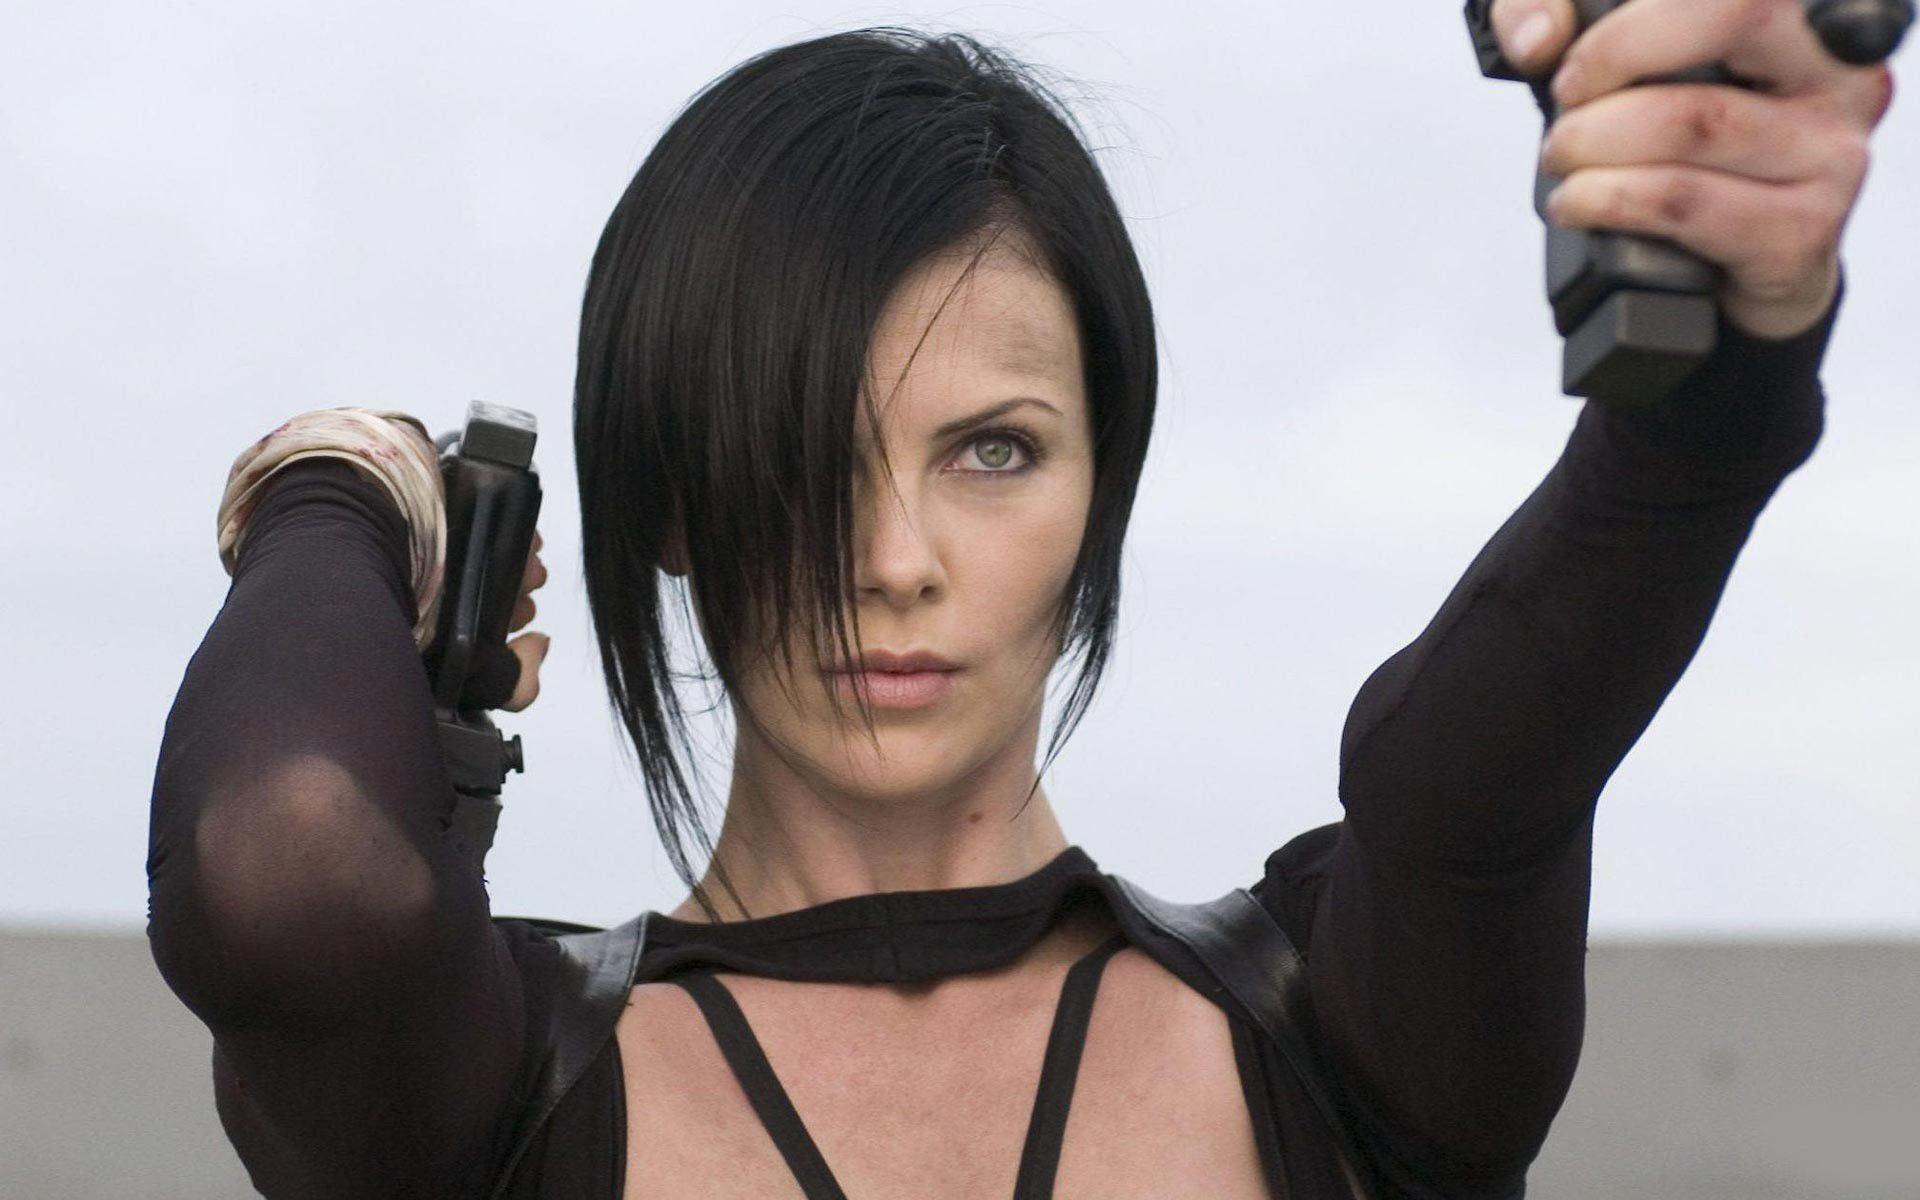 Res: 1920x1200, HD Wallpaper and background photos of Æon flux for fans of Charlize Theron  images.